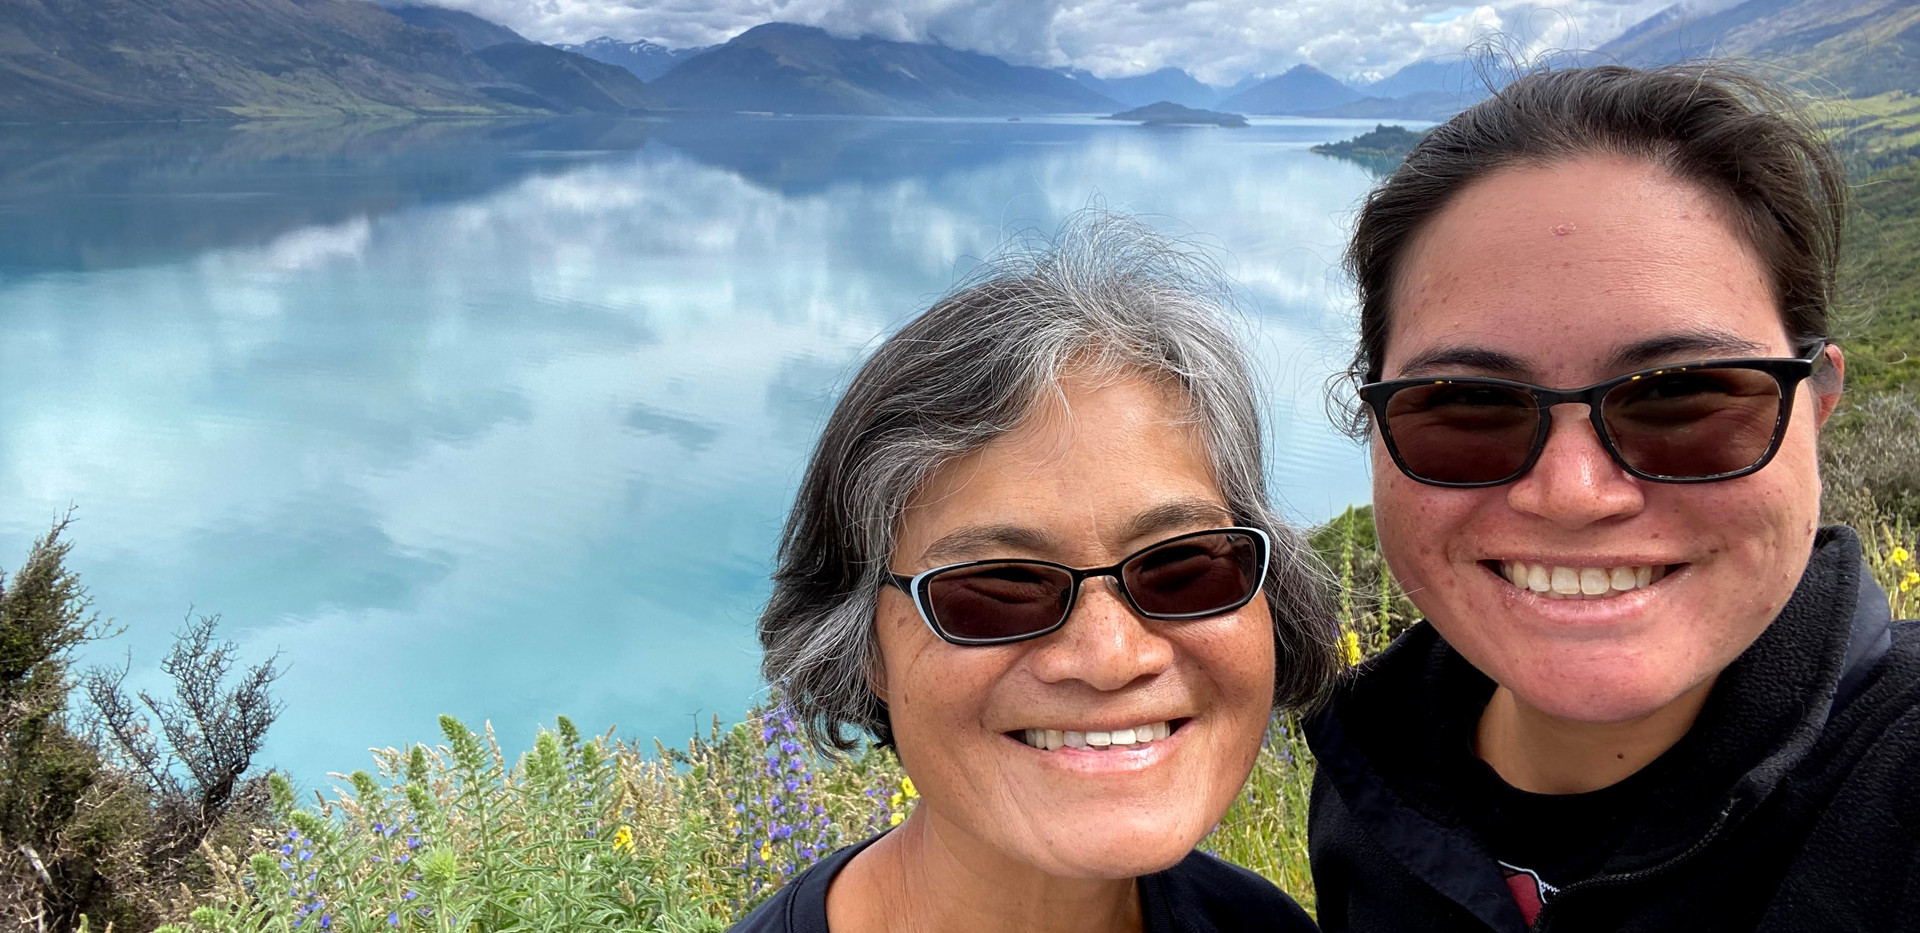 2019 on the road Queenstown to Glenorchy